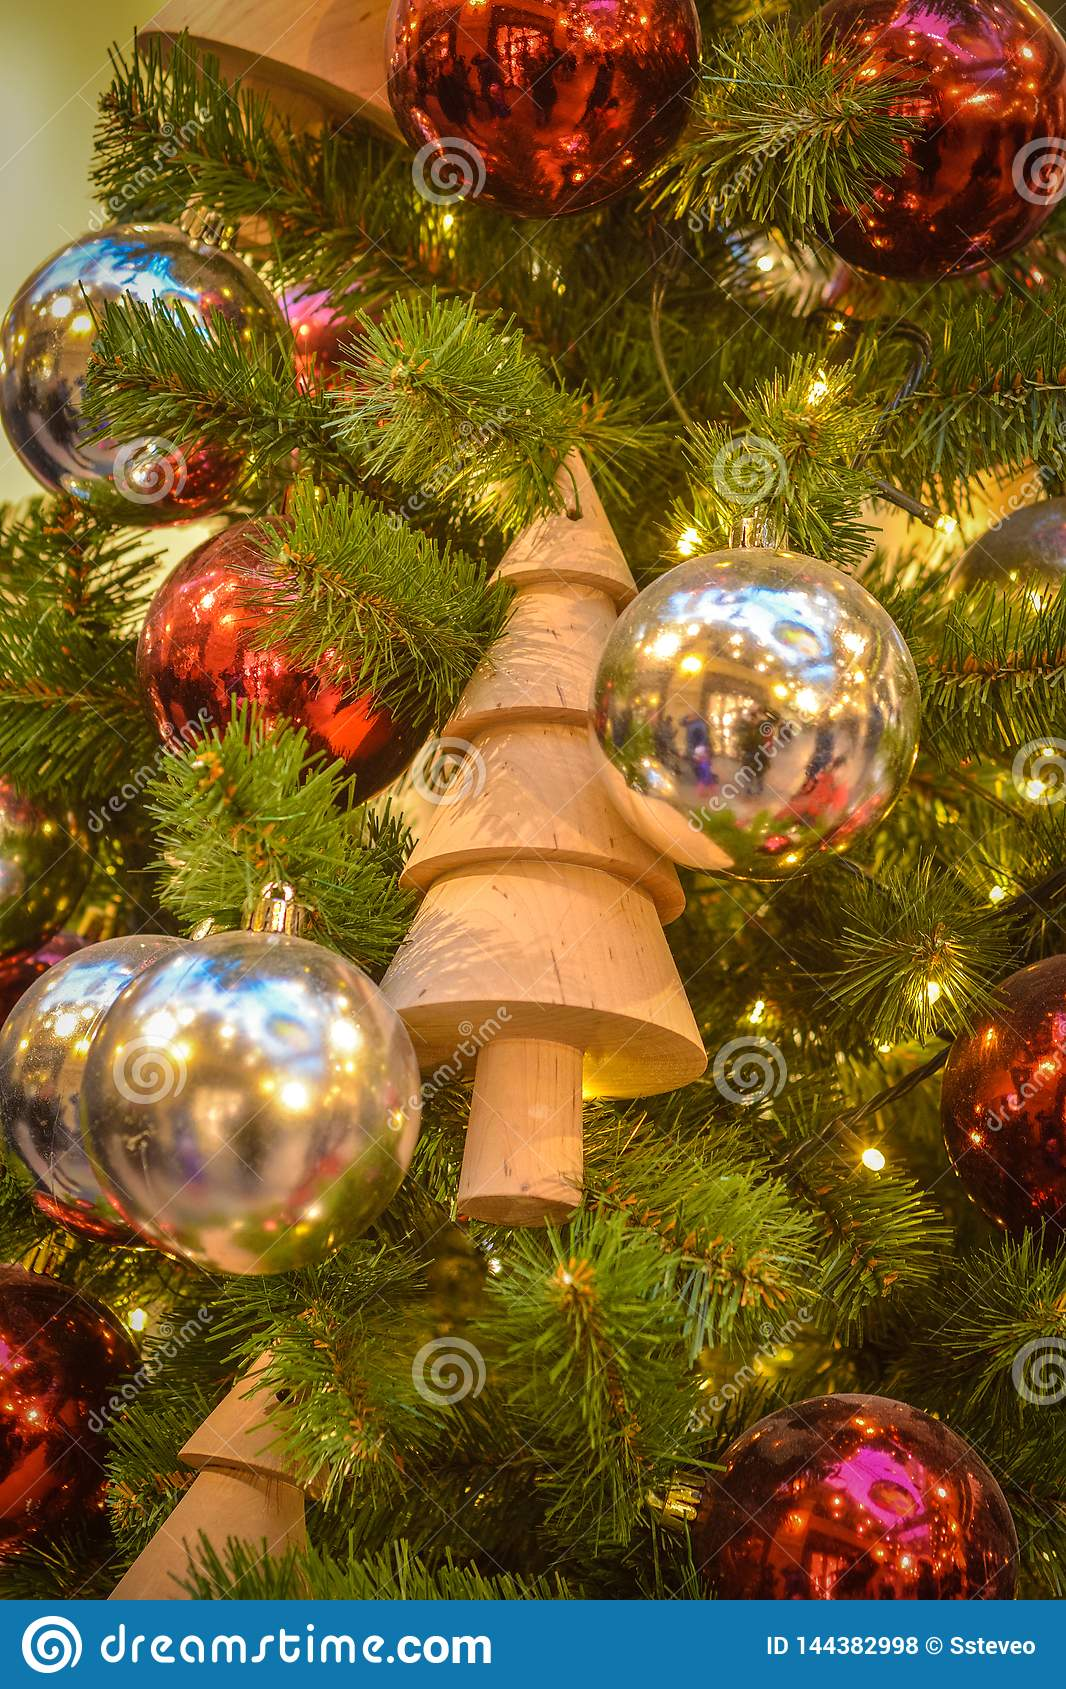 Toy - a wooden Christmas tree on a New Year tree